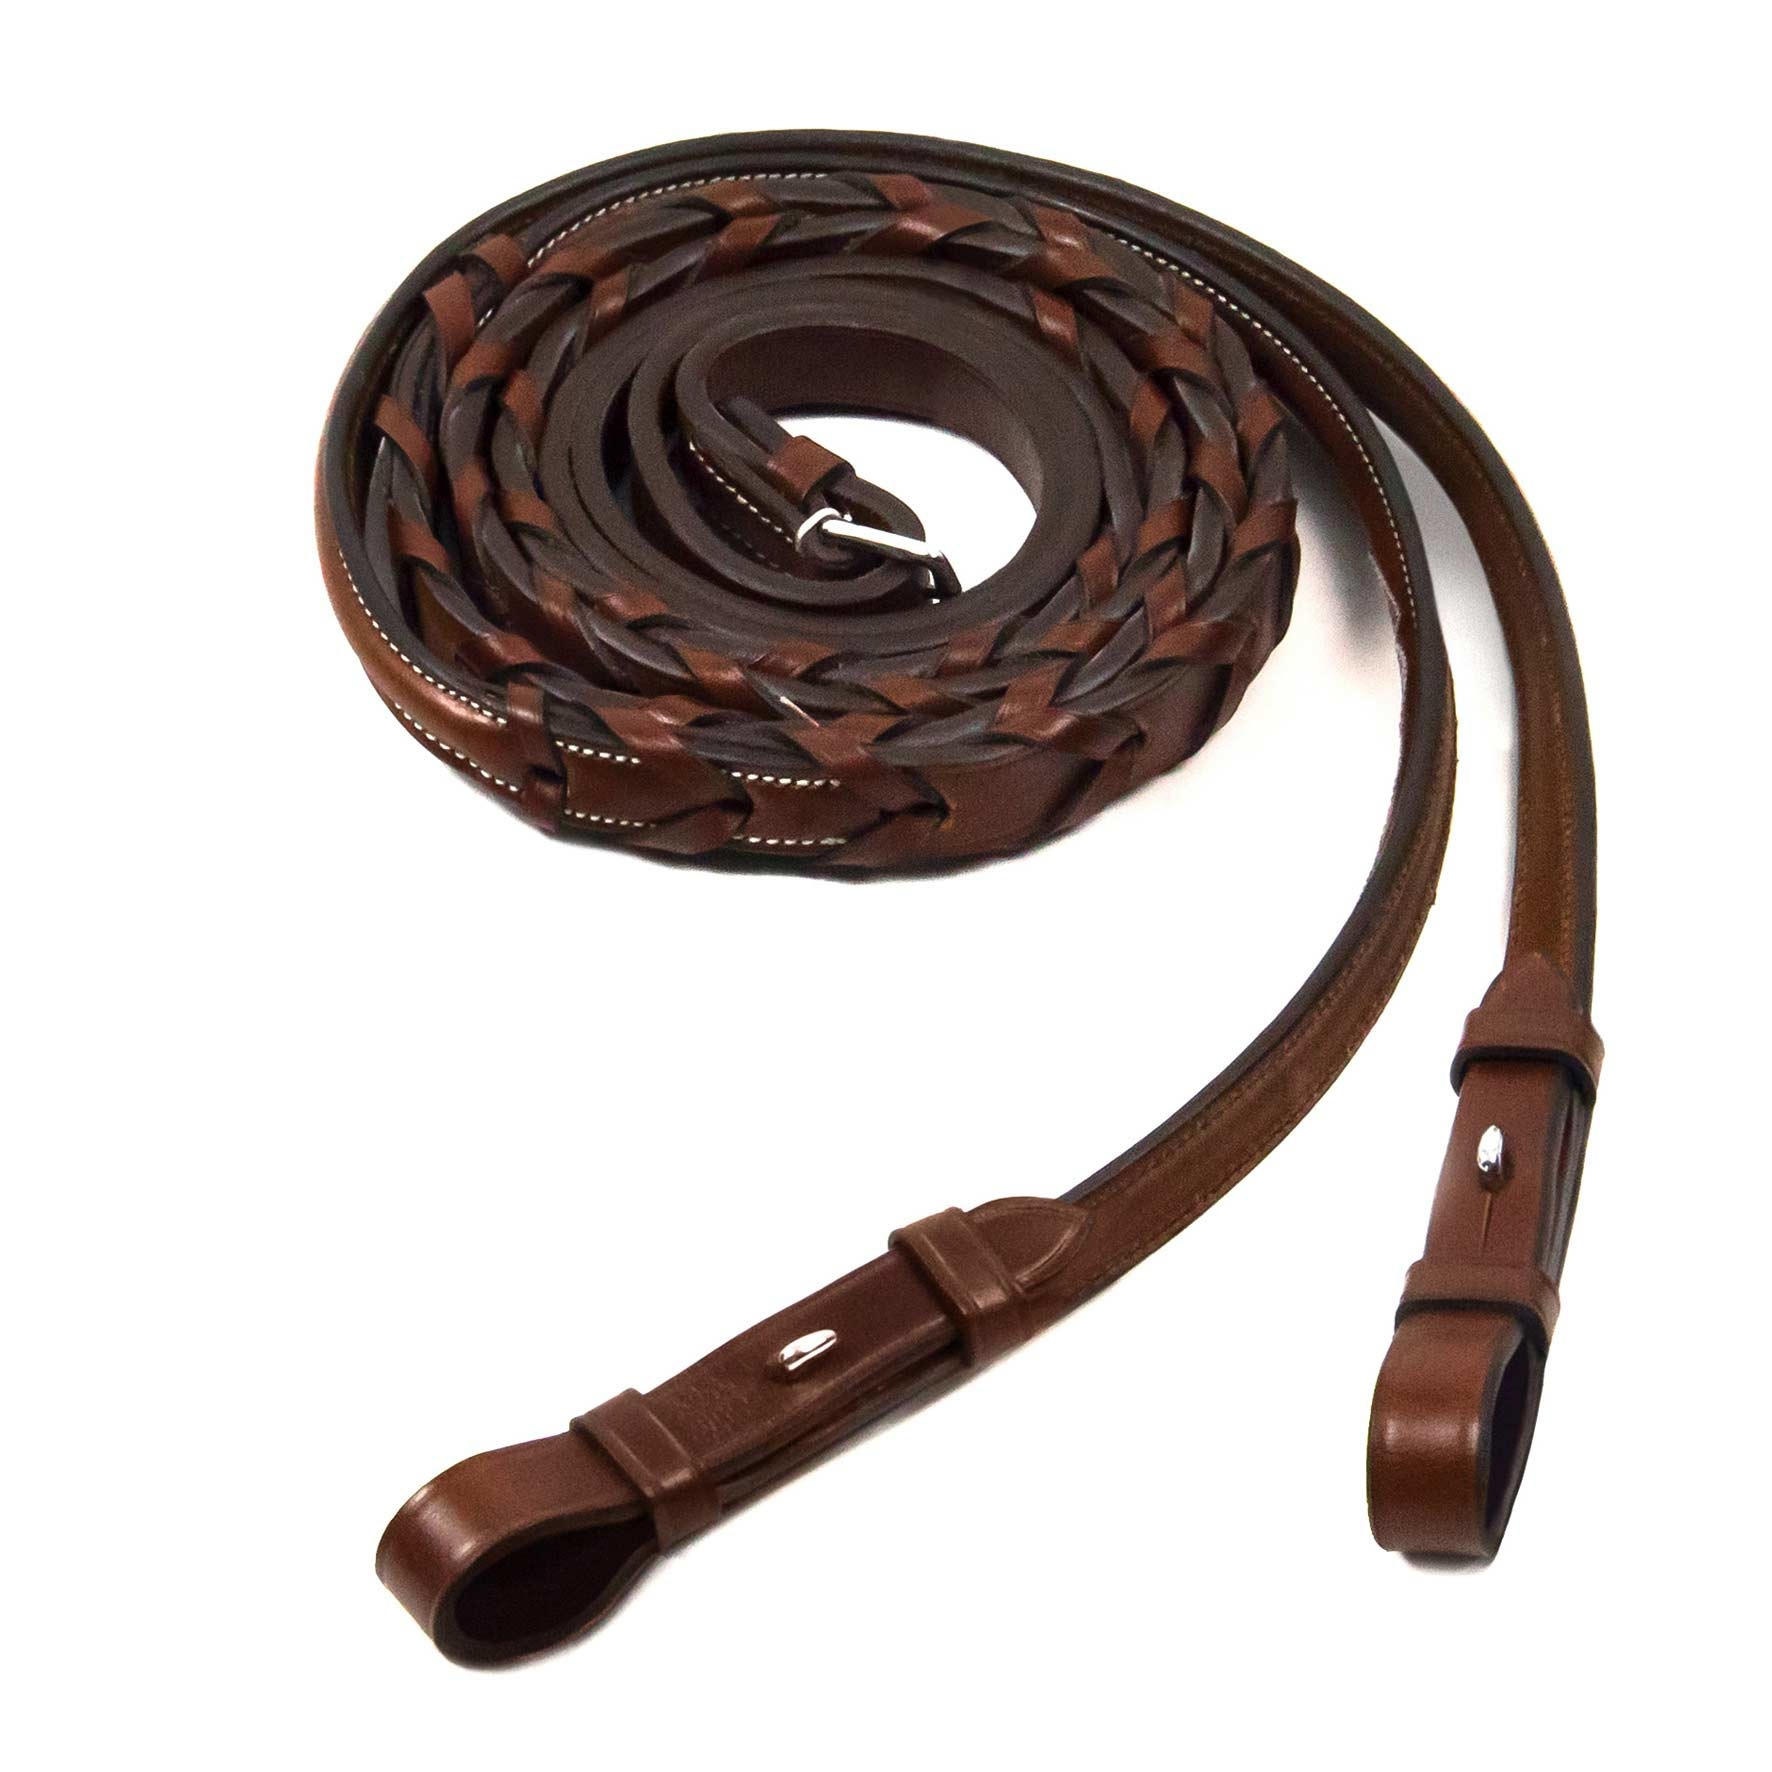 Schockemohle Schockemoehle Hunter Laced Fancy Reins With Hooks, Embroidered